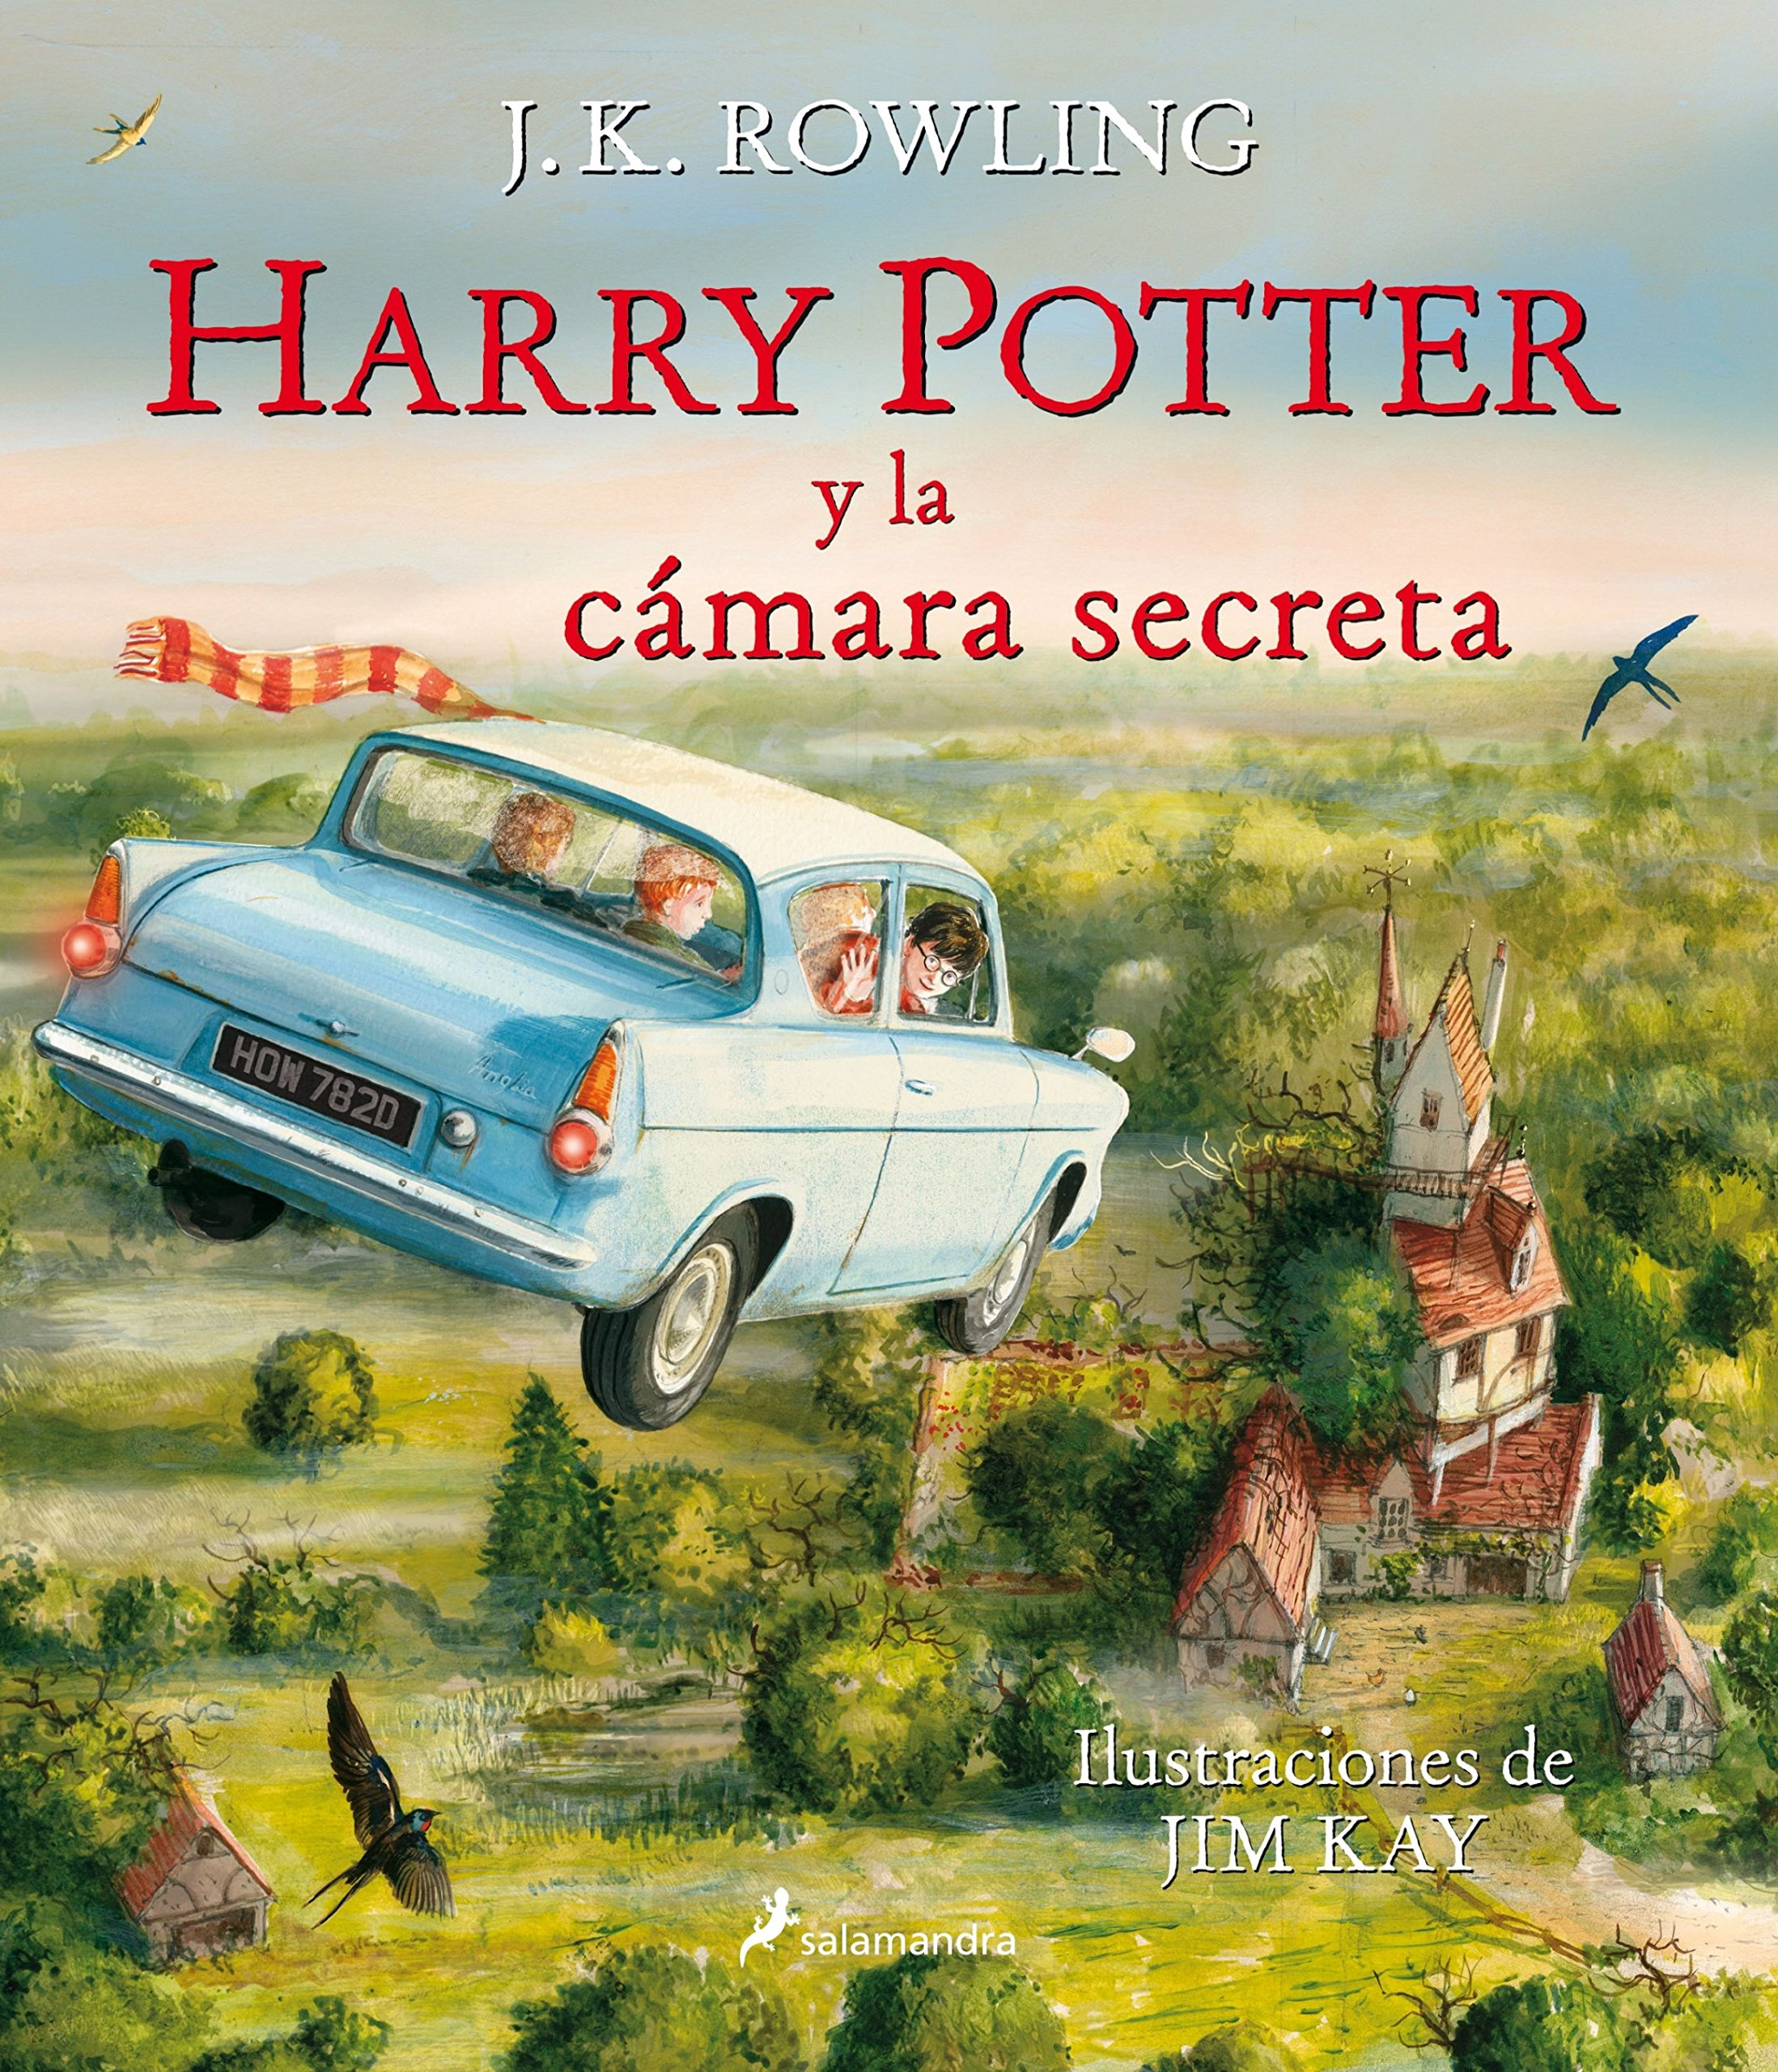 Harry Potter Ilustrado 2.jpg